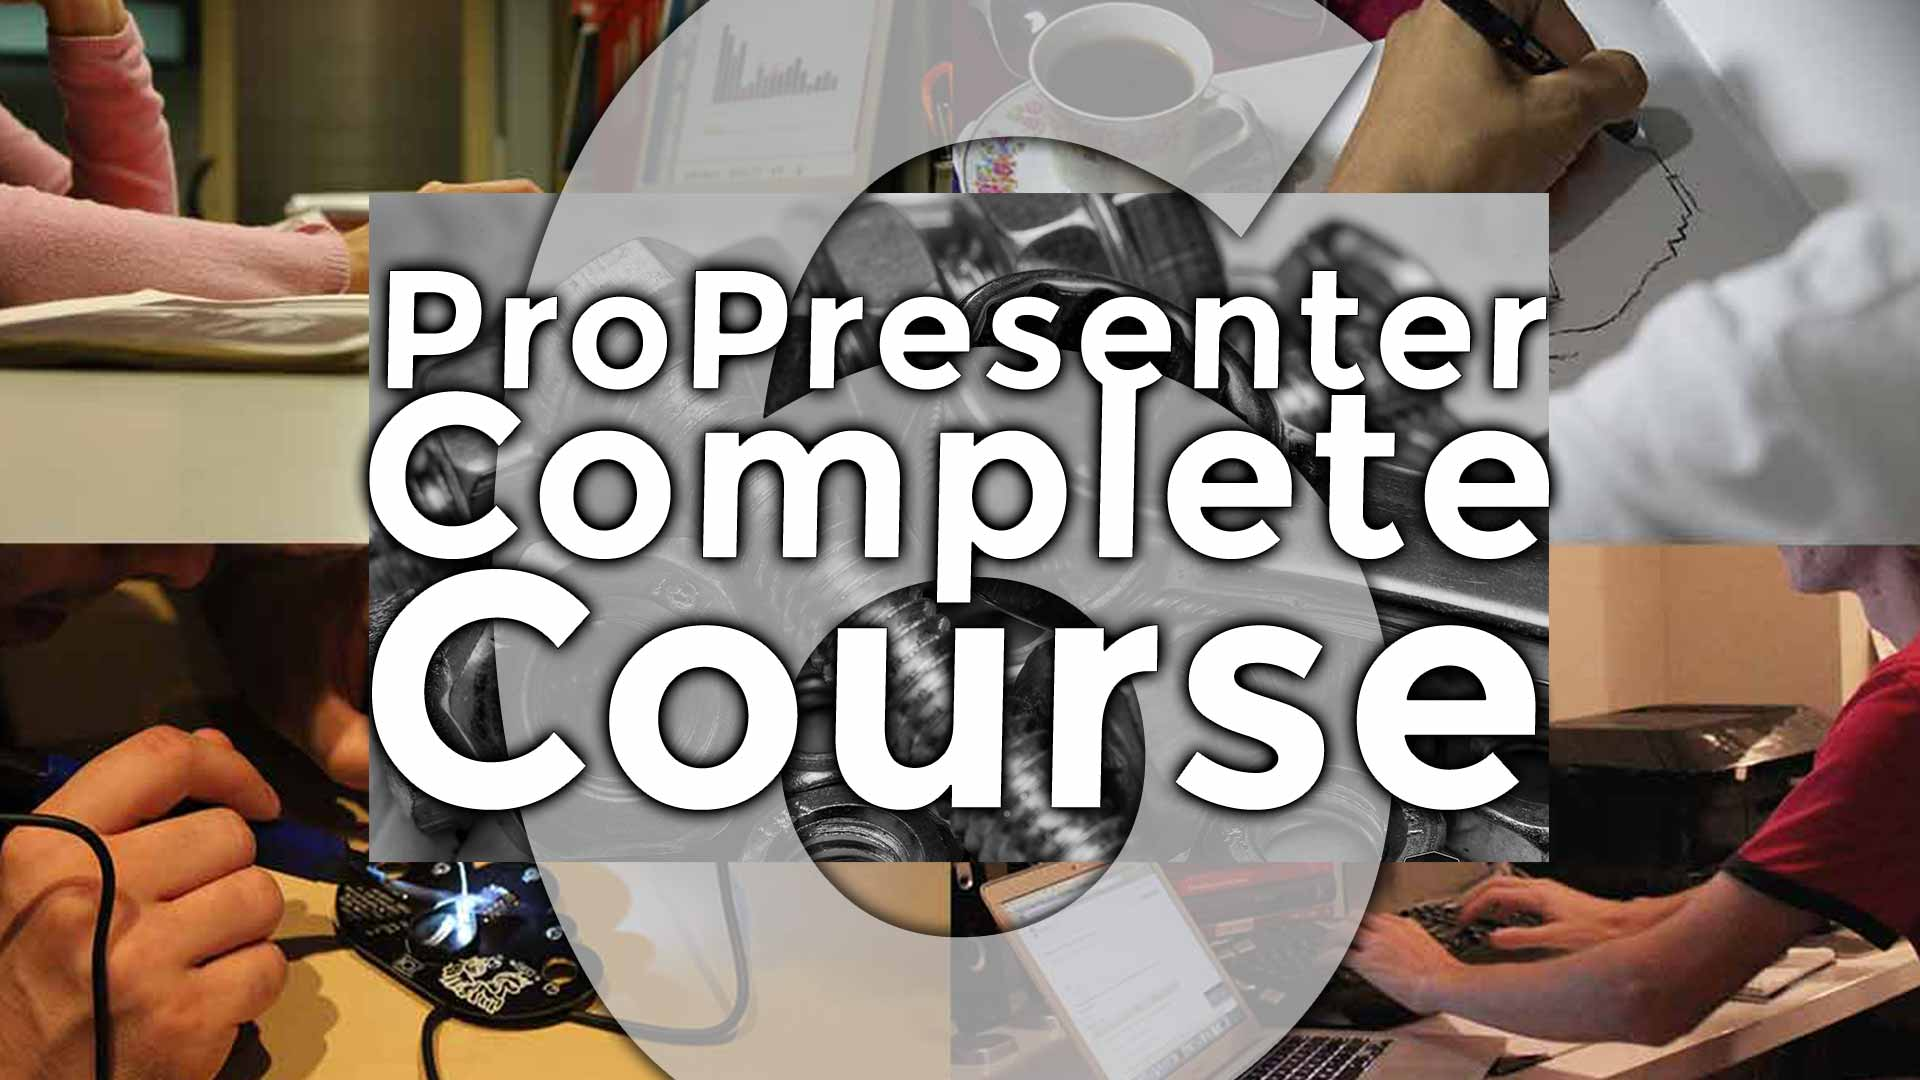 ProPresenter Complete Course